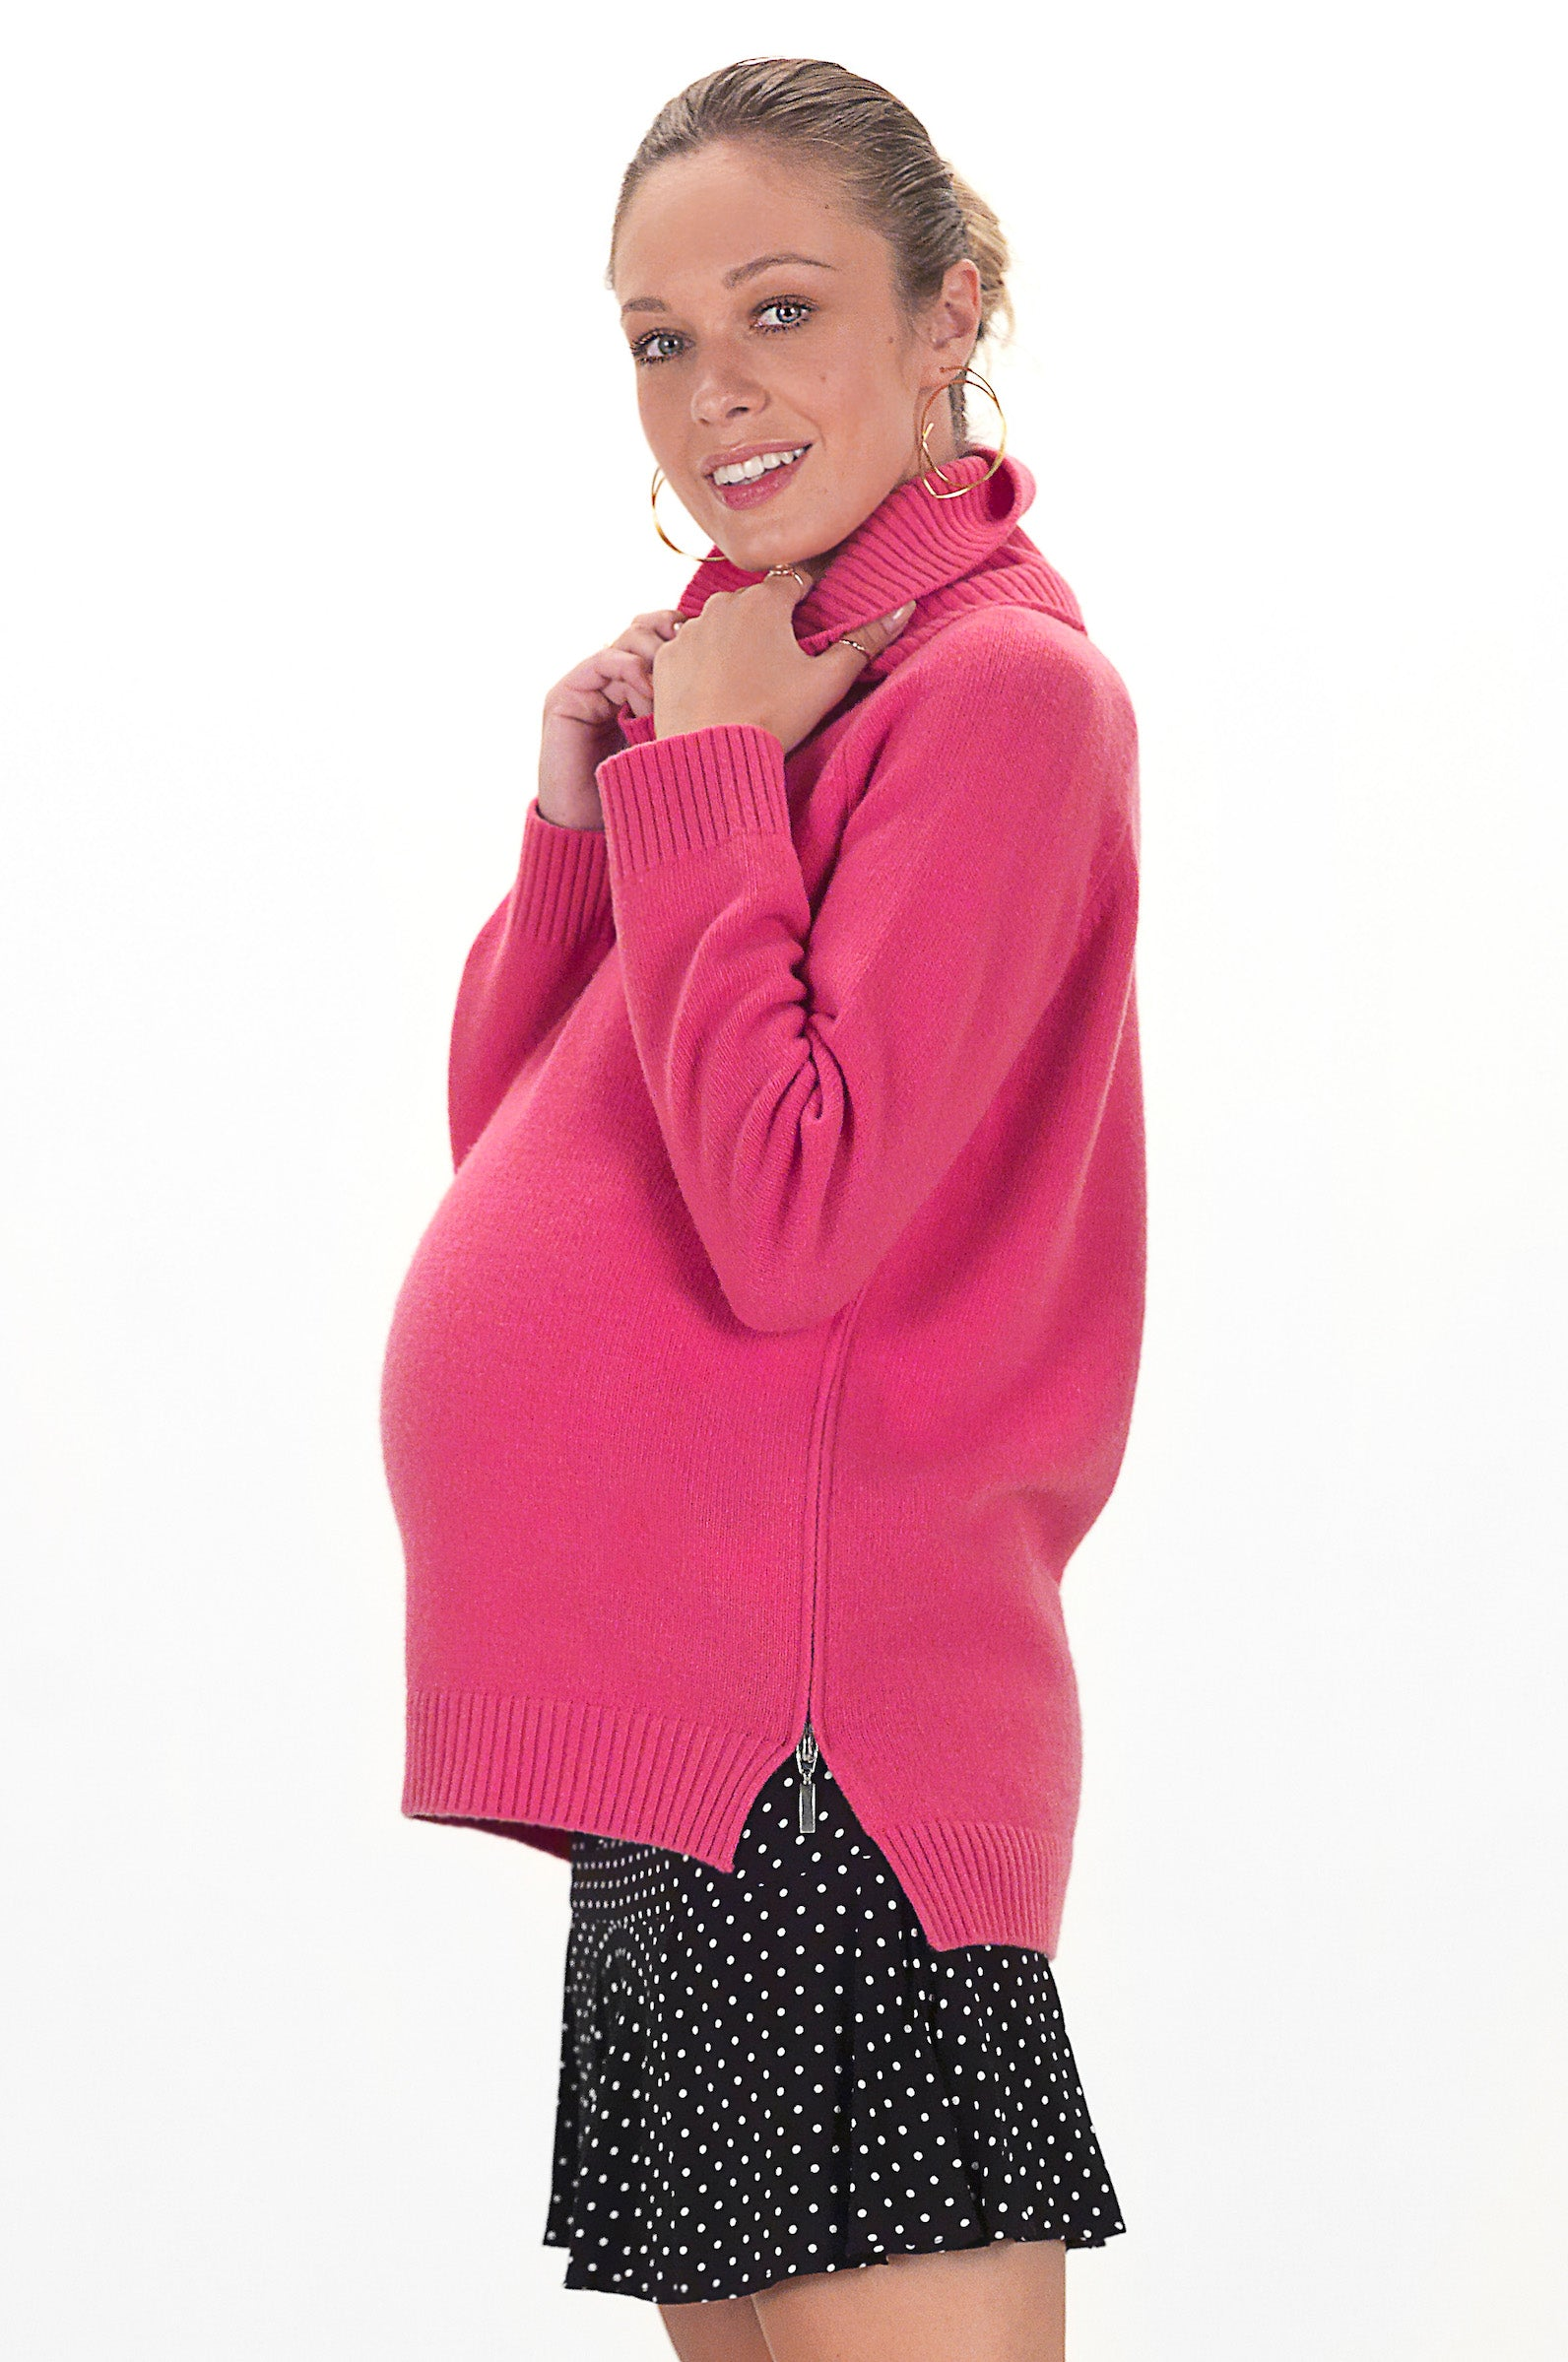 Maternity Sweater - Pregnancy Sweater - Nursing Sweater - teat&cosset sweater - Pink